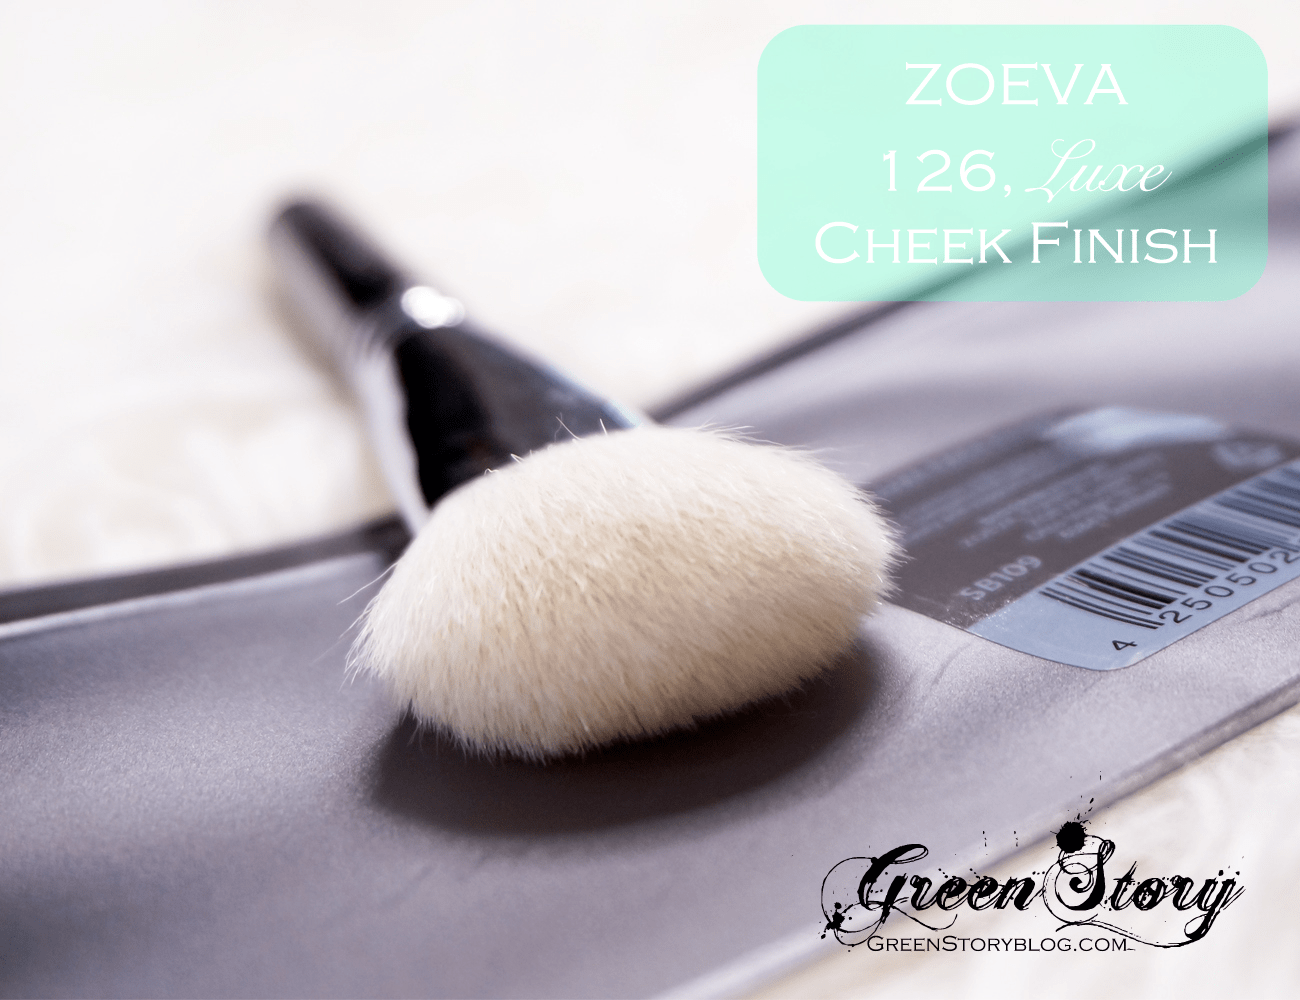 ZoevaCosmetics Face Brushes 126 Luxe Cheek Finish